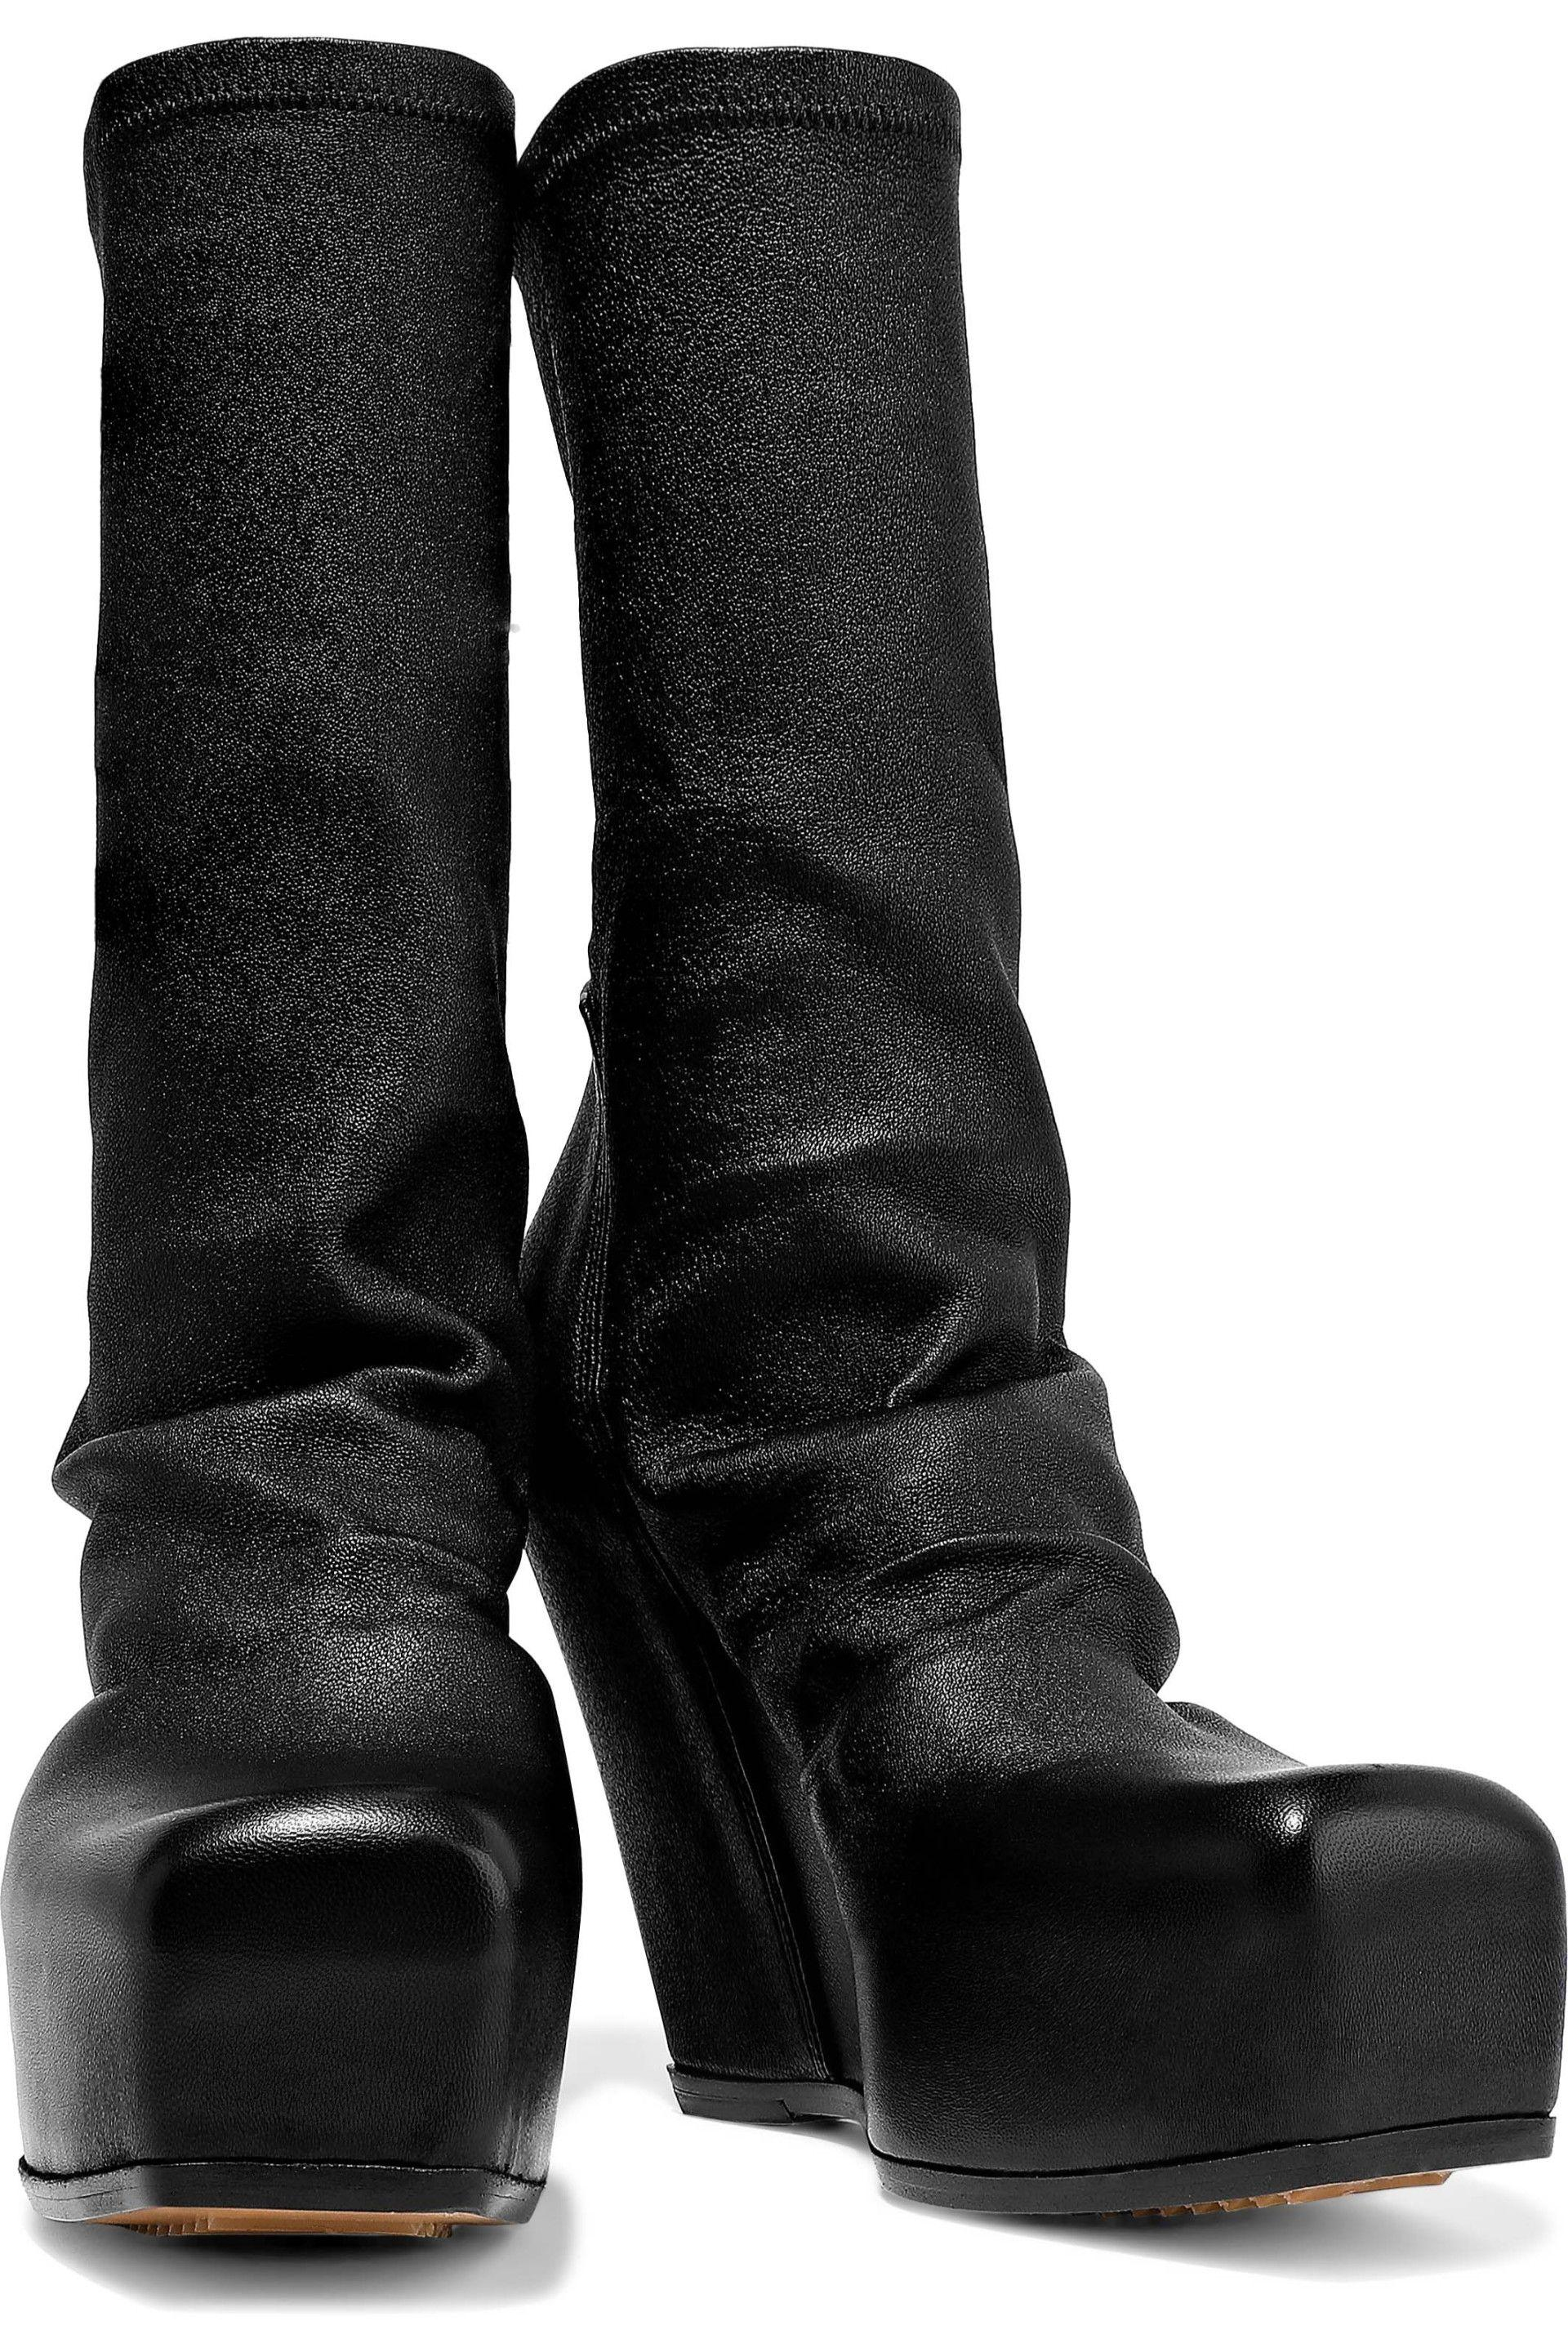 227125e3a10a Rick Owens - Woman Stretch-leather Platform Sock Boots Black - Lyst. View  fullscreen